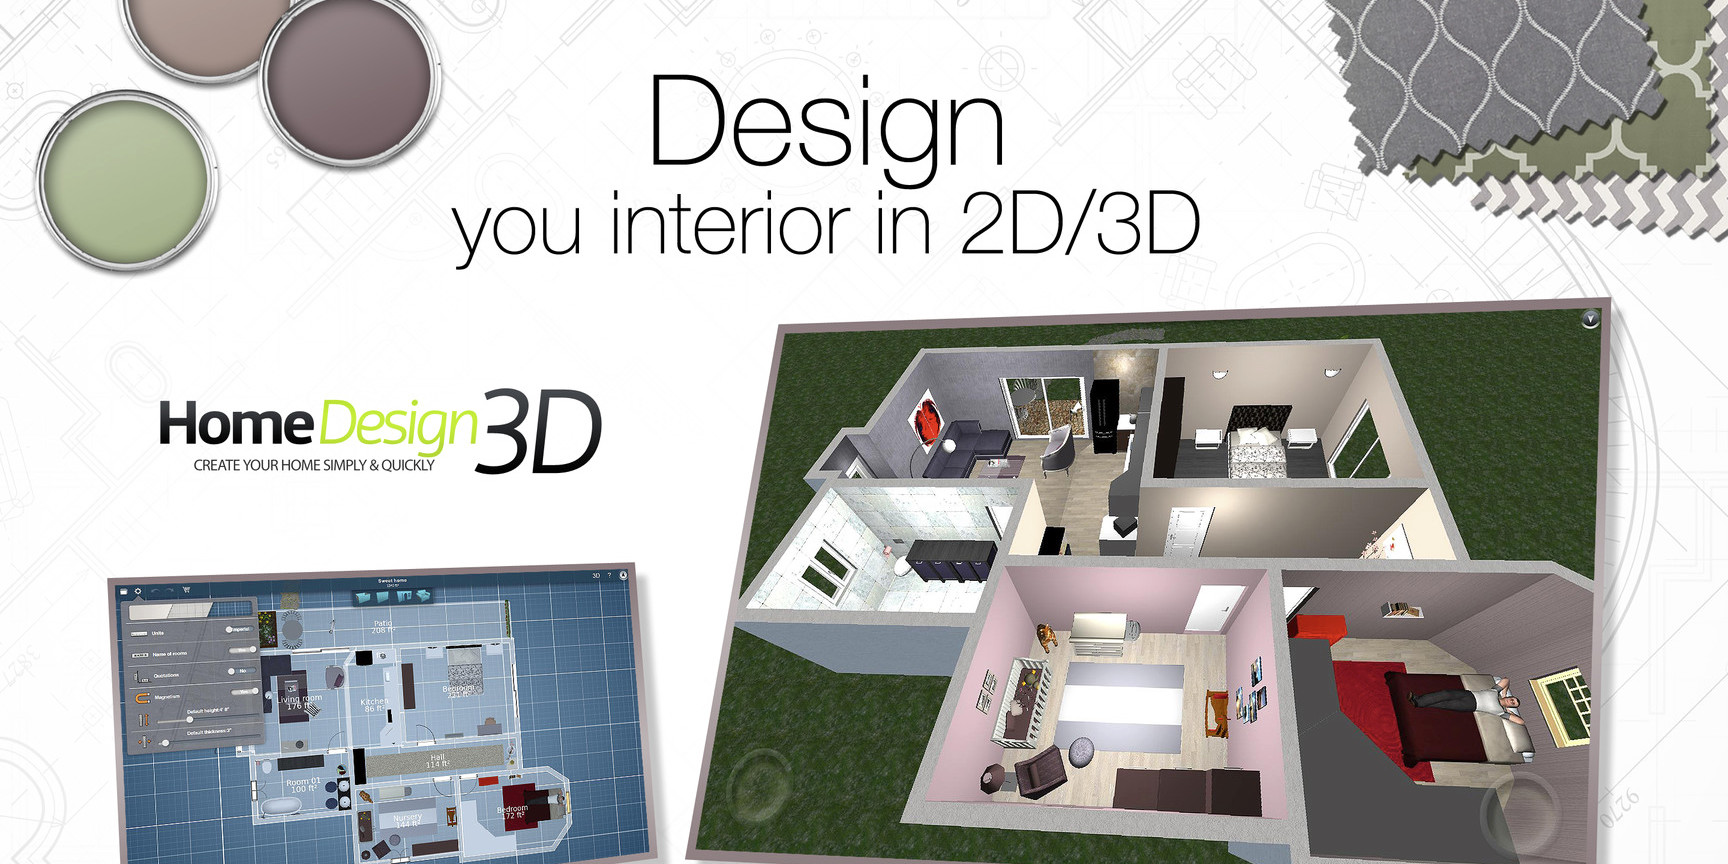 Home Designer 3D For IOS/Mac Goes Free For The First Time, GOLD Version $1  (Reg. Up To $10)